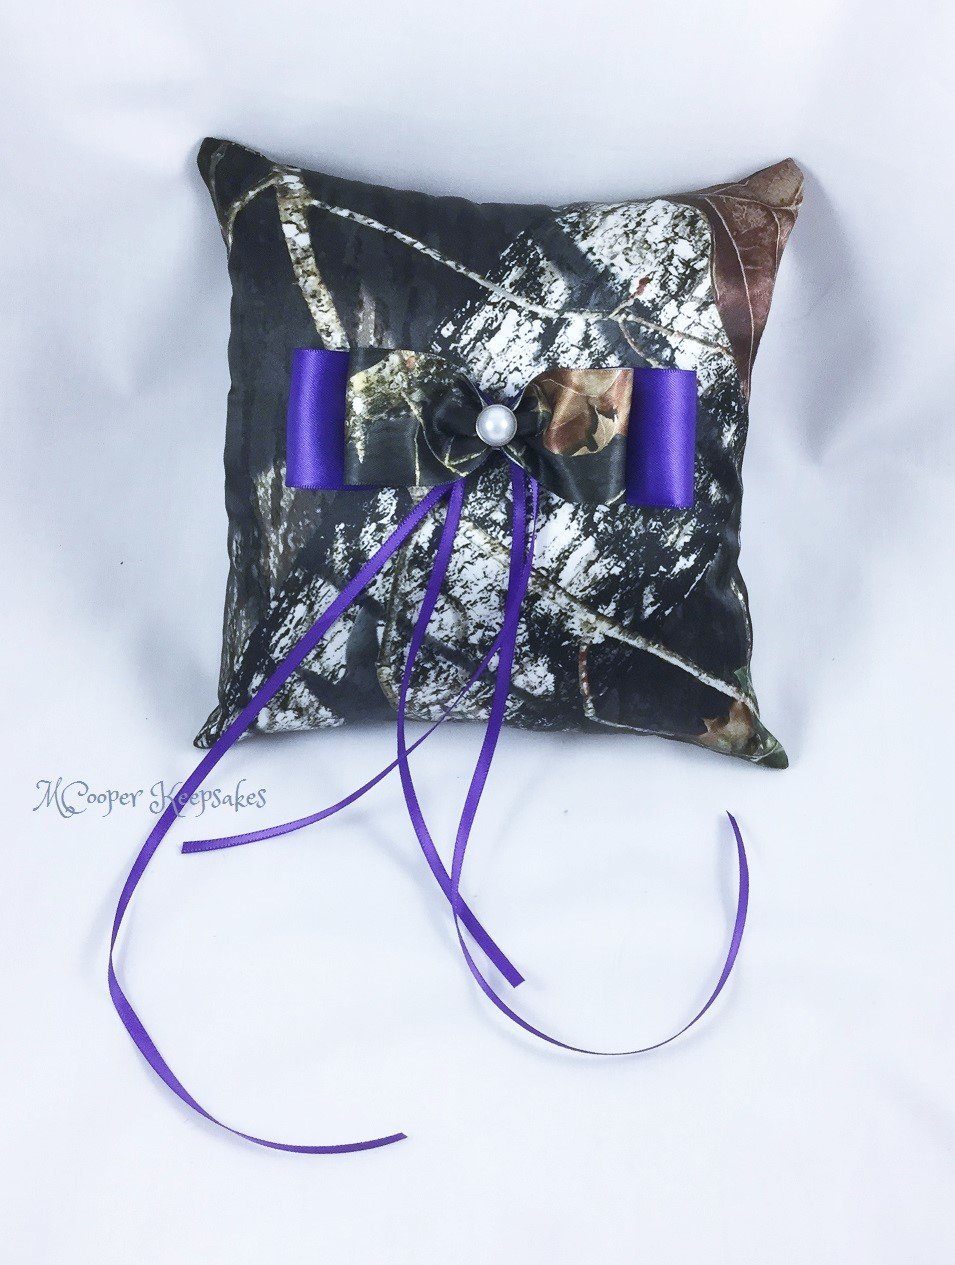 Mossy Oak Satin Camo & Purple Satin Ring Bearer's Pillow